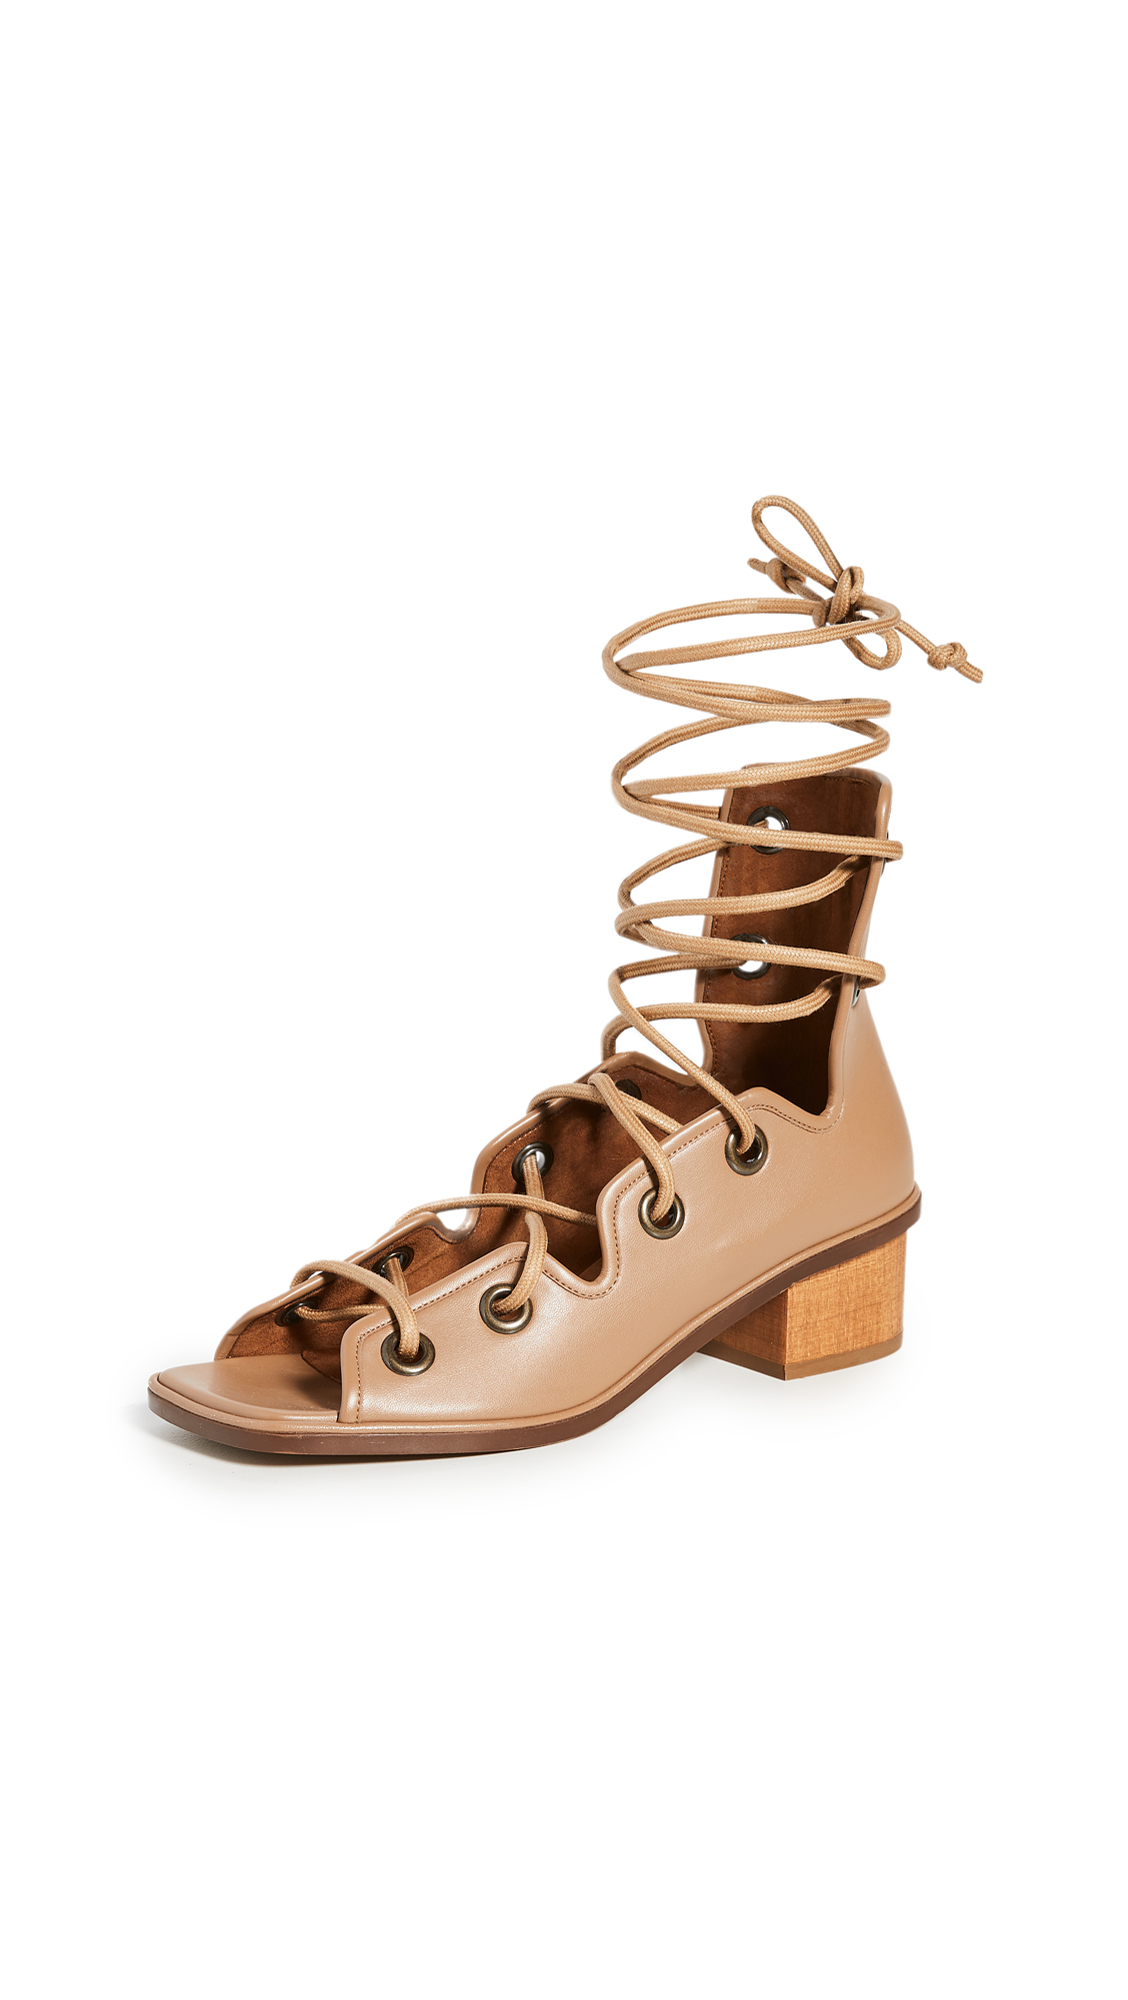 Buy Stella McCartney Maia Strings Sandals online, shop Stella McCartney